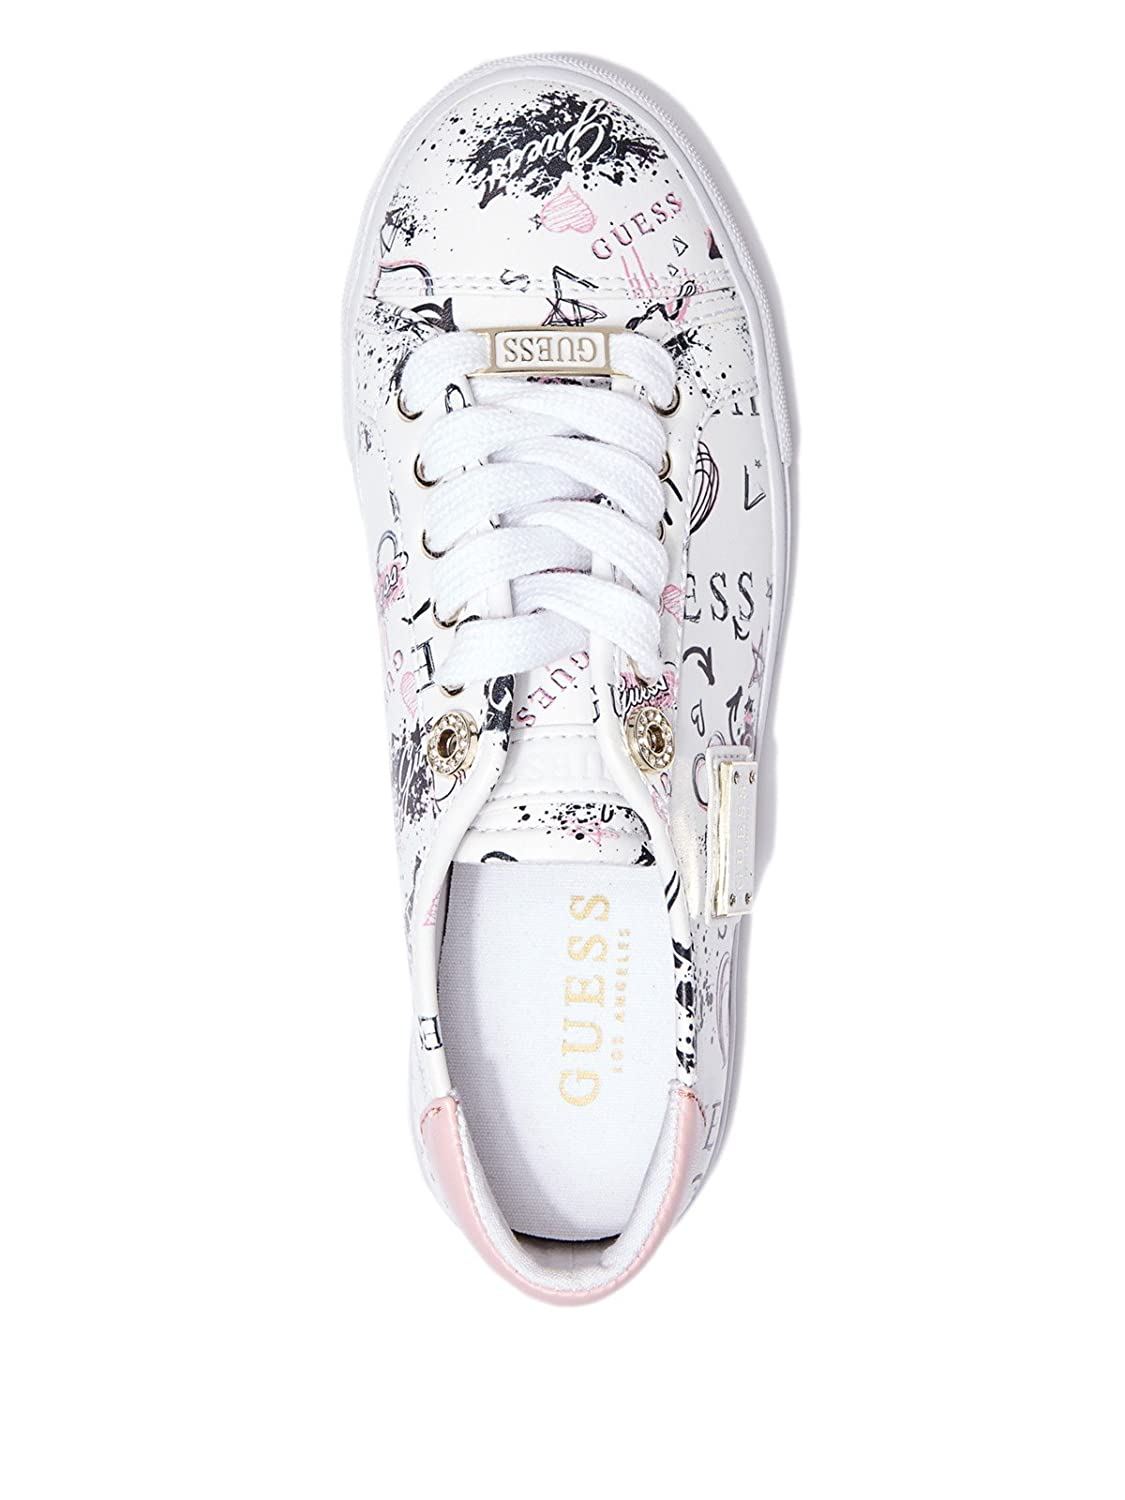 decd22dd0971 GUESS Factory Women s Greatly Printed Sneakers White Size  M US  Amazon.co. uk  Shoes   Bags